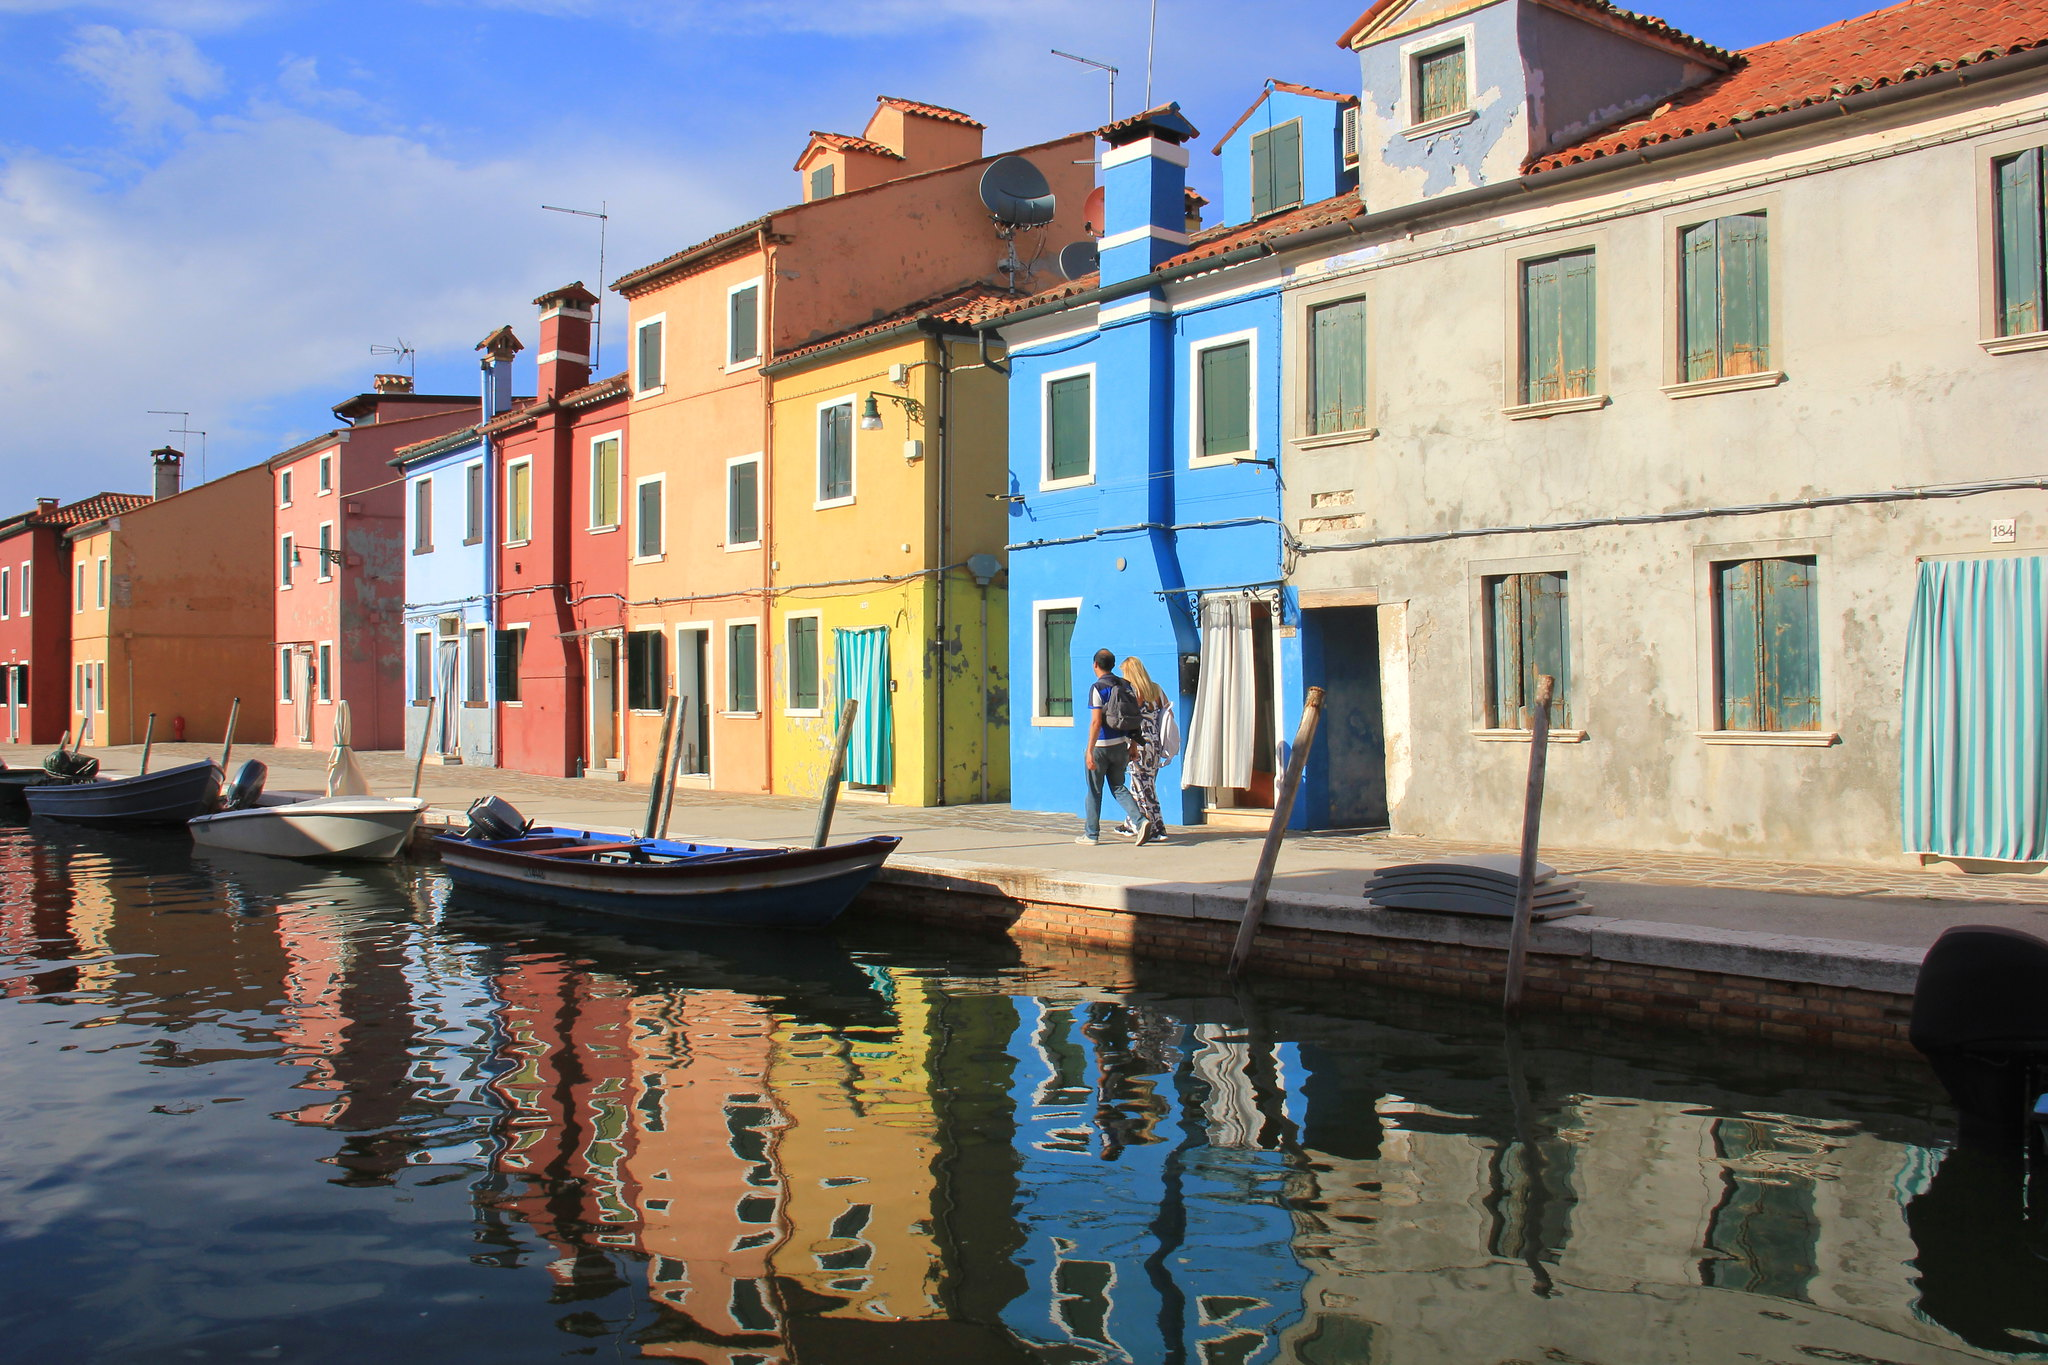 The popular tourist island of Burano